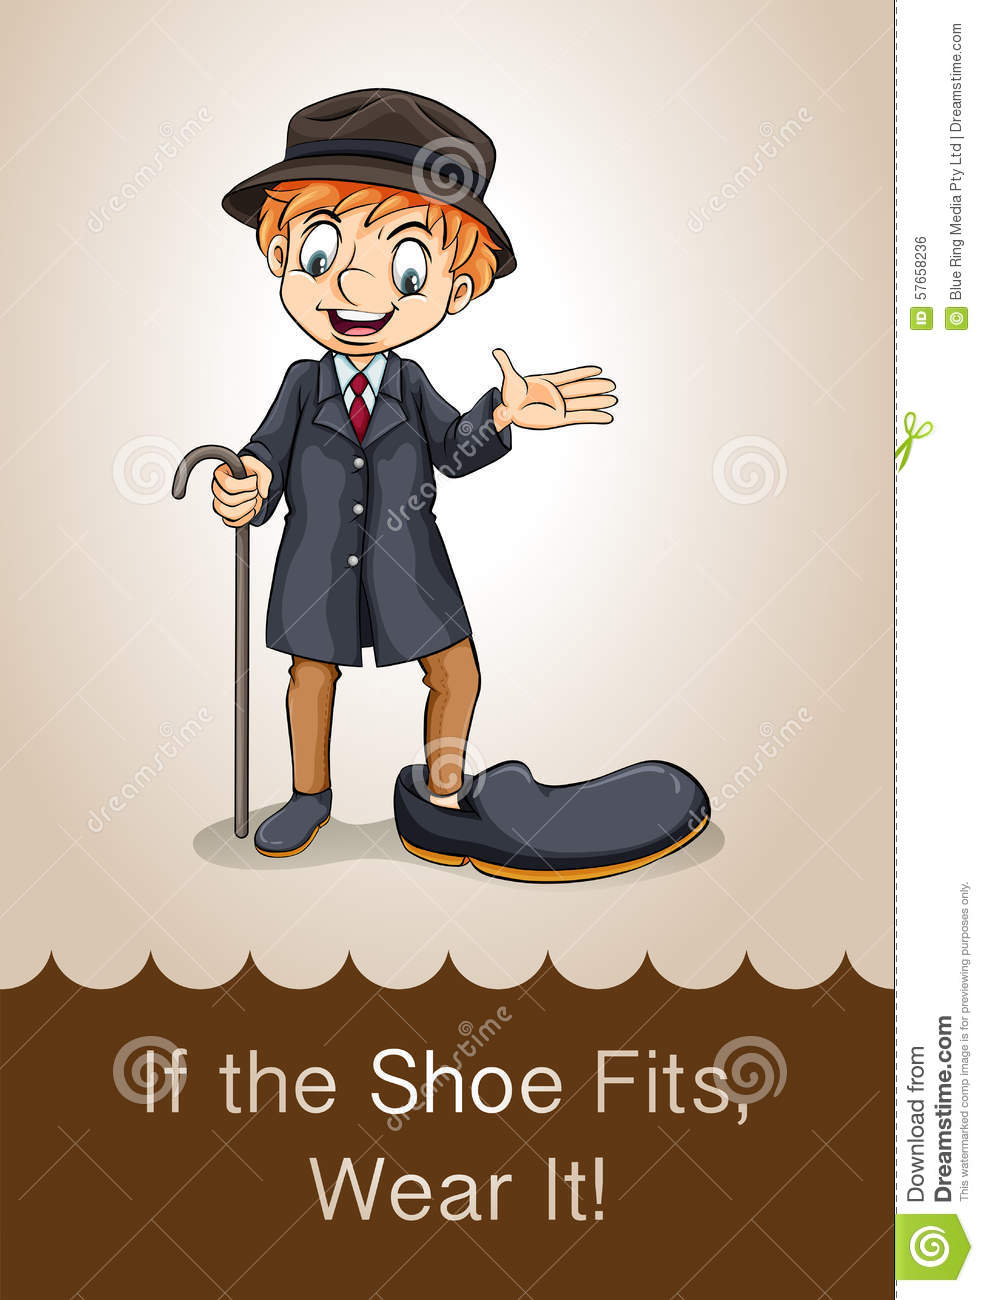 If The Shoe Fits Idiom